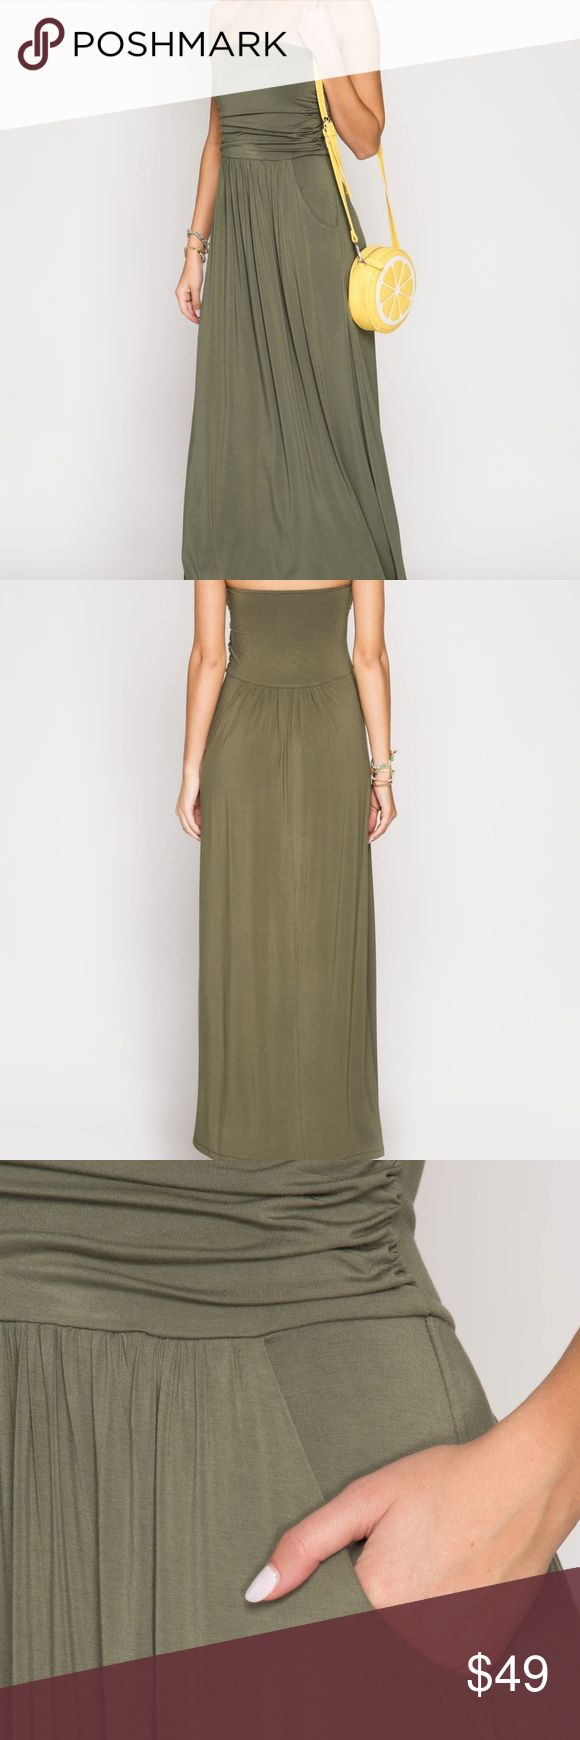 ❤️🔥! Tube Maxi Dress w/ Pockets- Olive, NWT RARE FIND! Tube Maxi Dress w/ Pockets  OLIVE  NWT  TRUE TO SIZE, MODEL IS WEARING A SMALL  70% Cotton 30% Rayon She and Sky Dresses Maxi